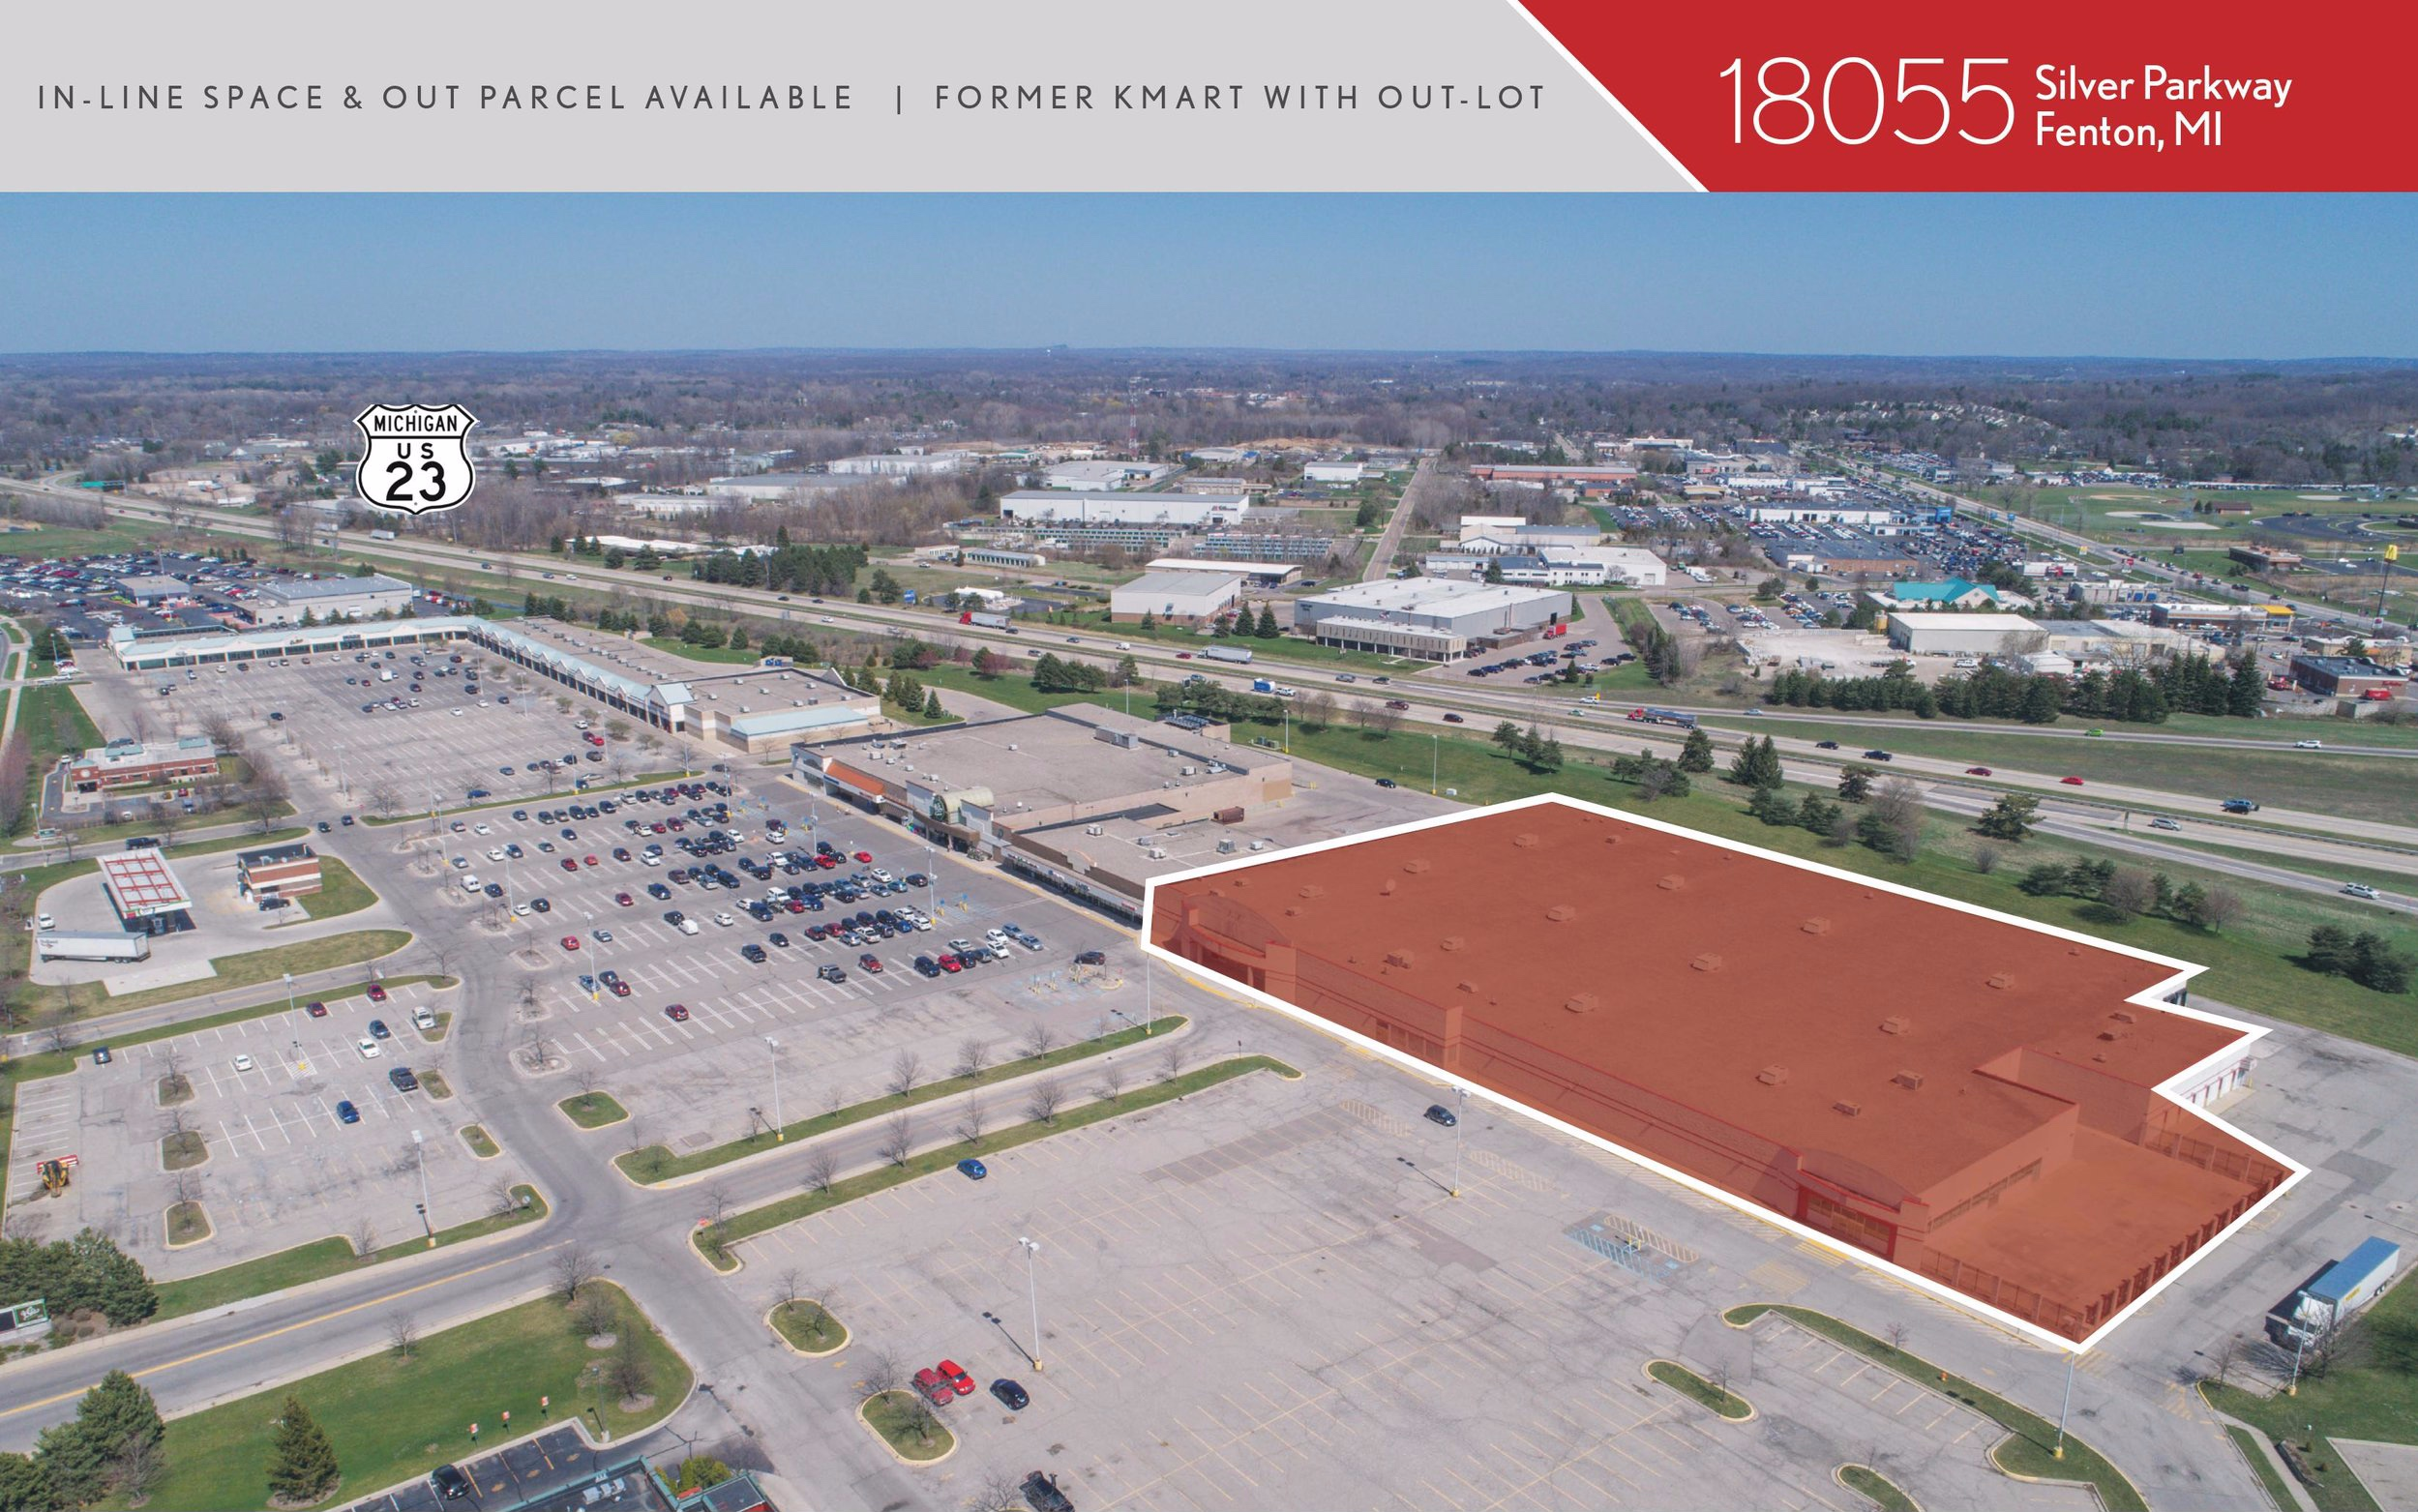 87,000 SF redevelopment slated for completion Summer 2019. Tenants include TJ Maxx, Michaels, Five Below, and Sketchers